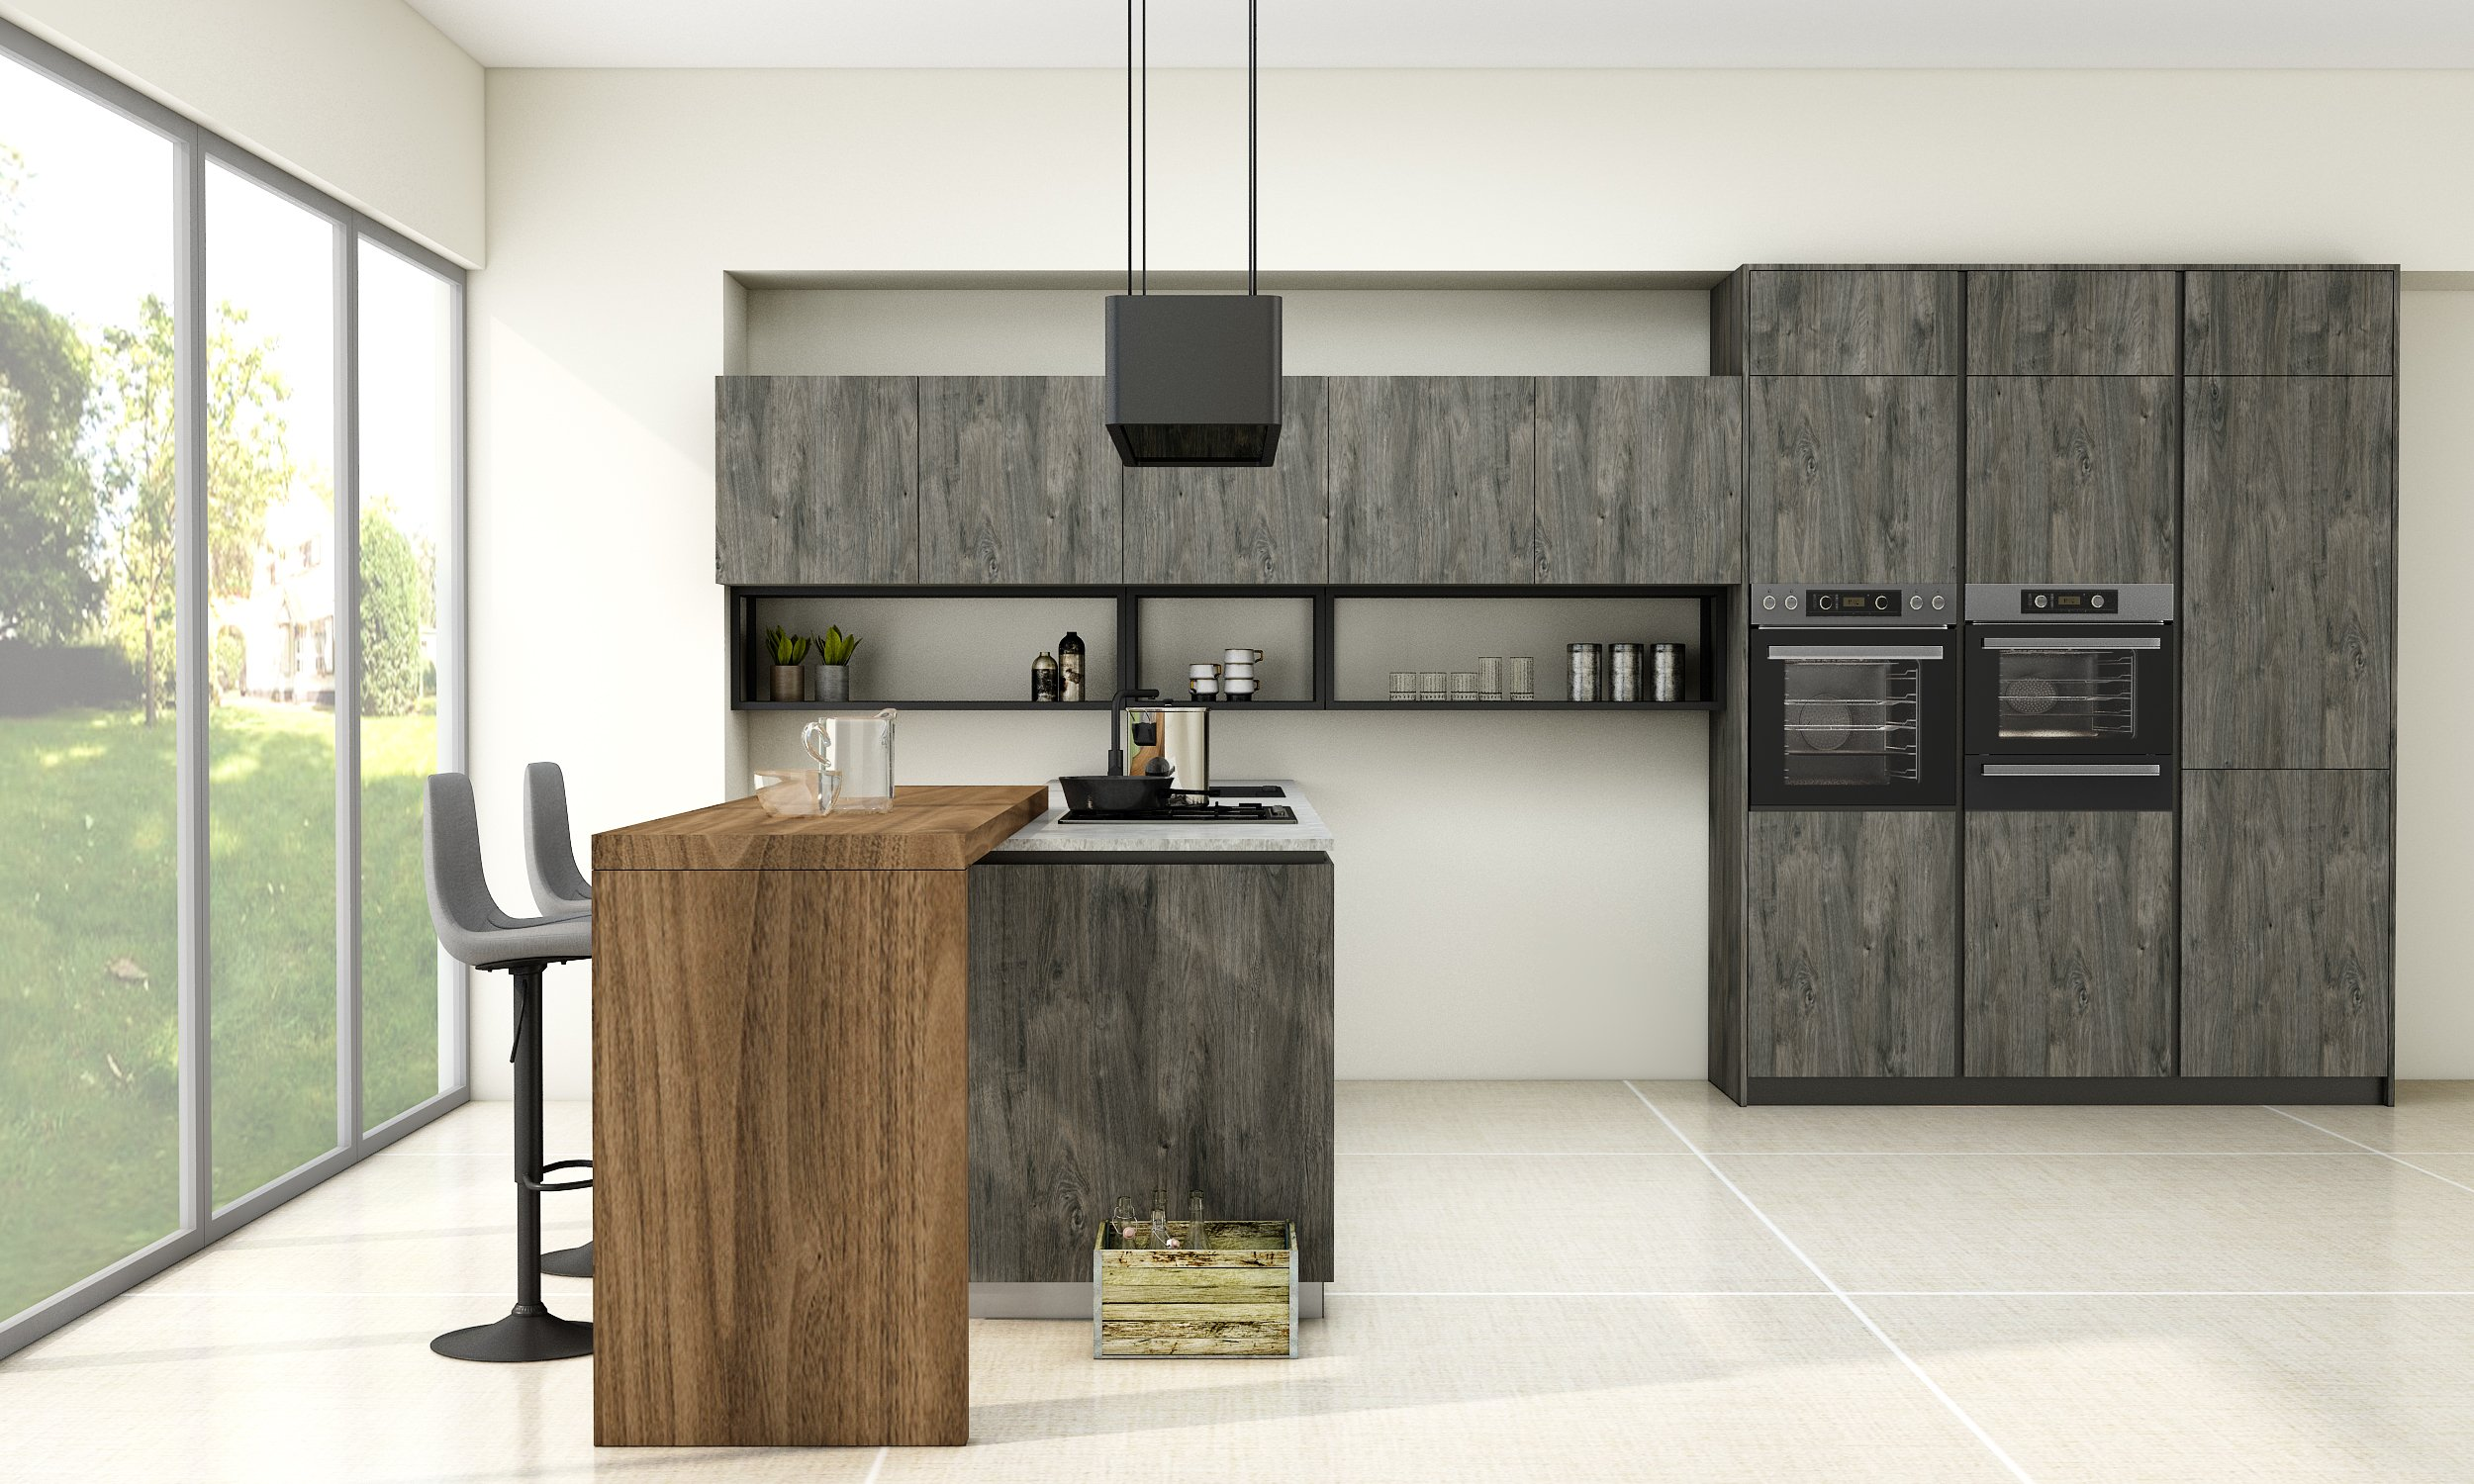 Handleless Kitchen With Black Handle Profile in Espresso Harbor Oak and Natural Walnut Finish